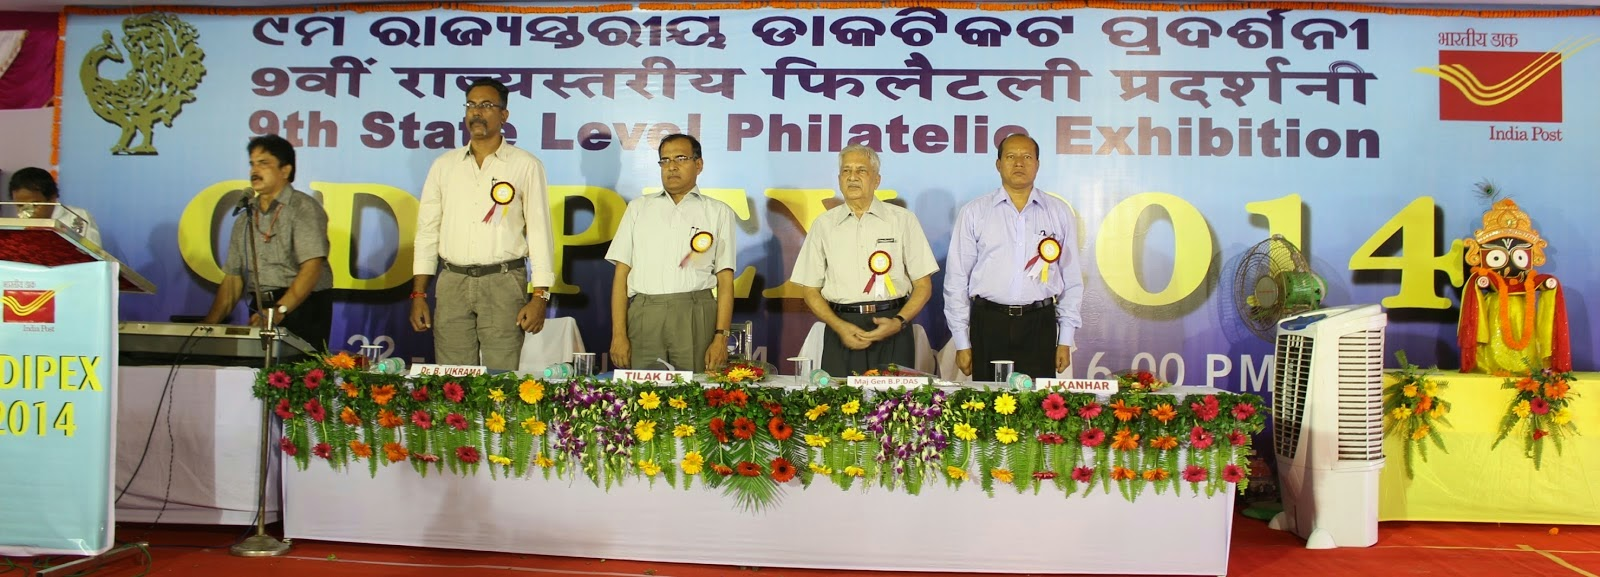 The 9th state level philatelic exhibition odipex 2014 started on 22nd aug 2014 will be concluded today the 24th aug 2014 stamp collections of many